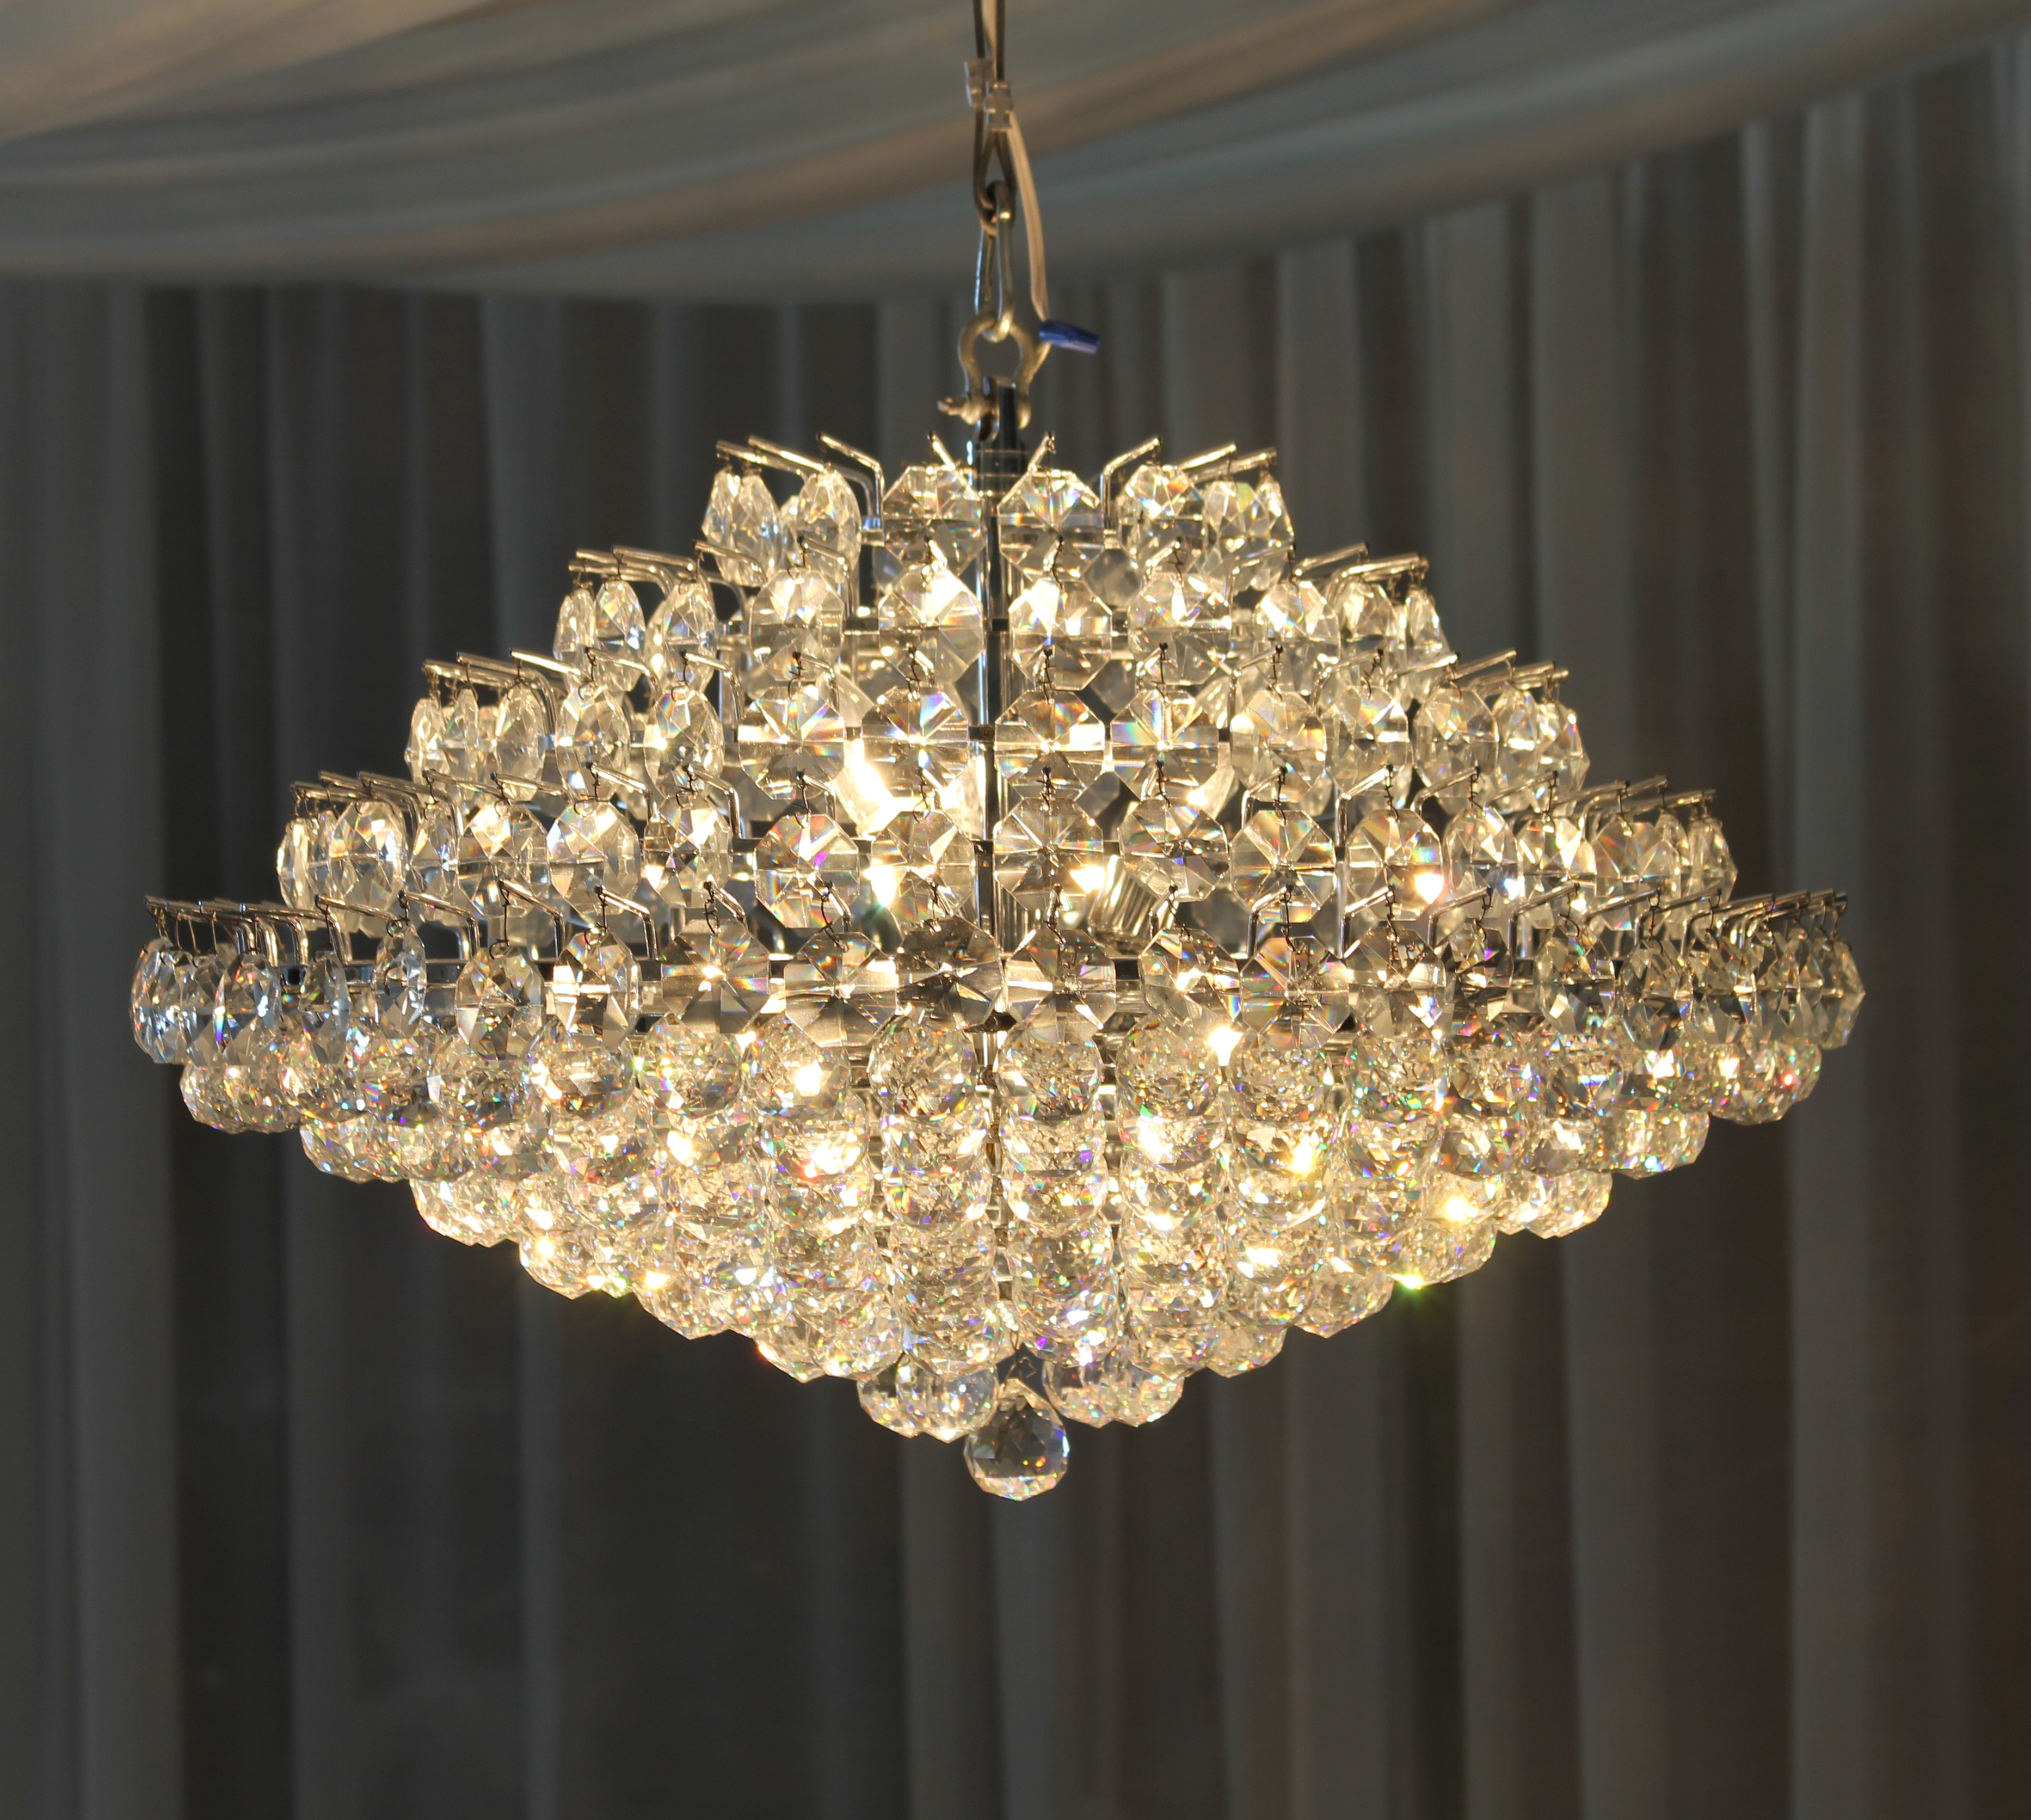 18 Crystal Chandelier Town Country Event Rentals In Crystal Chandeliers (Image 1 of 15)